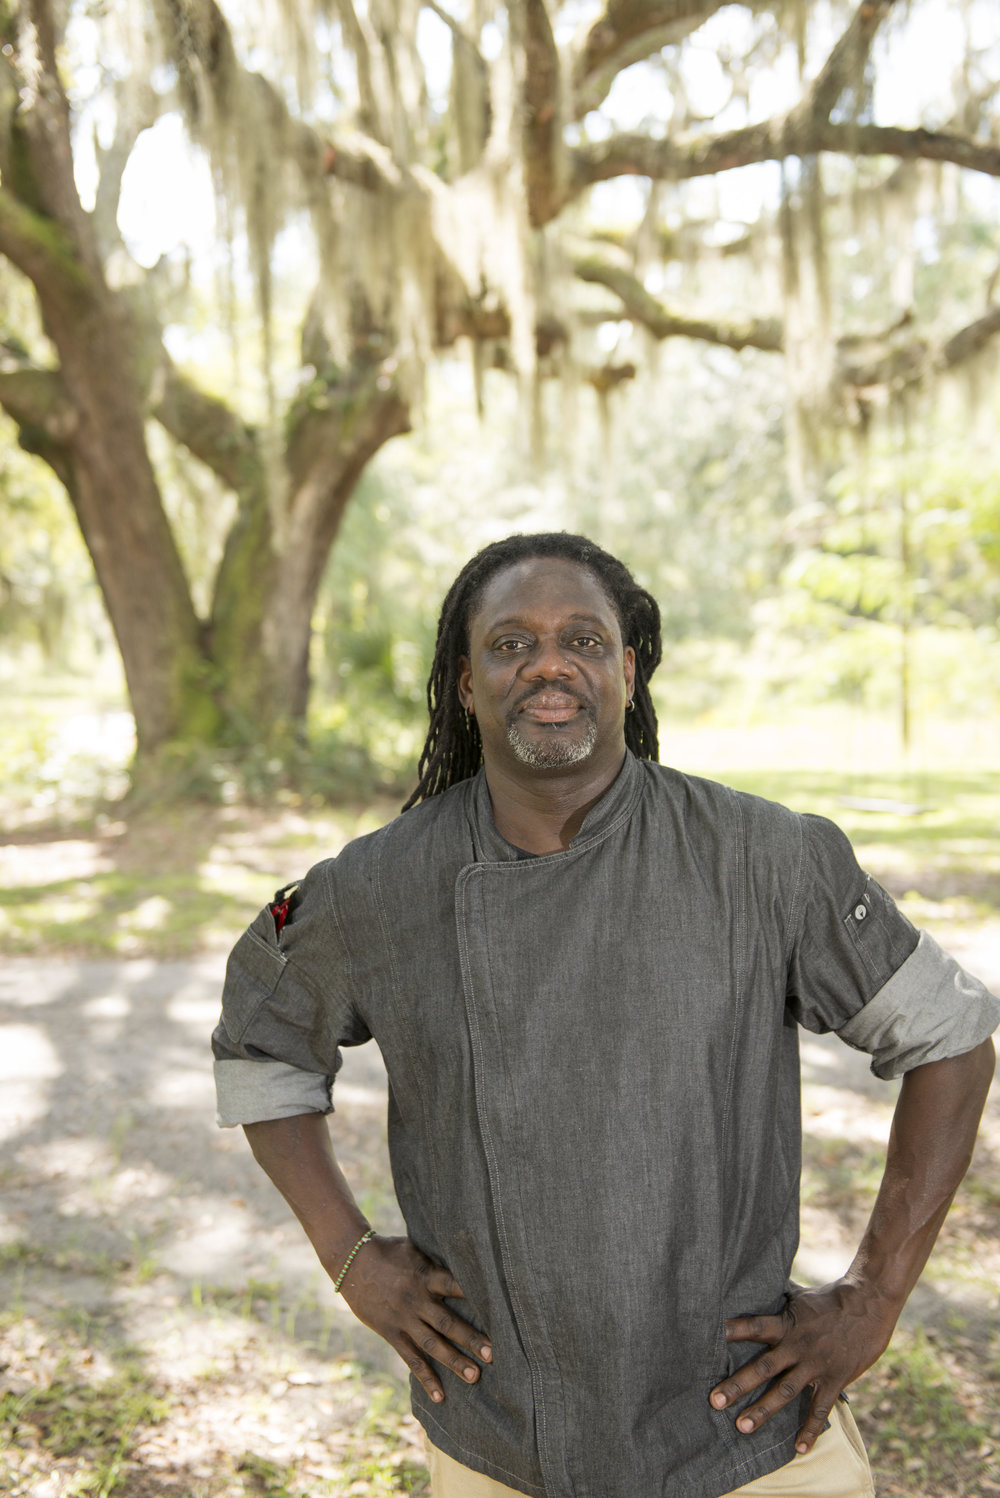 Matthew Raiford - Raiford grew up breaking the dirt and trading crookneck squash for sweet potatoes, raising hogs and chickens, and only going to the grocery store for sundries. After a military career then graduation from the Culinary Institute of America in Hyde Park, New York, Raiford returned to the farm in 2011 to continue the traditions of his Gullah-Geechee heritage and to create an authentic farm-to-fork experience for locals. He received certification as an ecological horticulturalist from the University of California's Santa Cruz Center for Agroecology and Sustainable Food Systems.He served until recently as the program coordinator and associate professor of culinary arts at the College of Coastal Georgia. In 2015, Raiford, the former executive chef at Little St. Simon's Resort, and his partner, Jovan Sage, a food alchemist, opened The Farmer and the Larder on Newcastle Street, helping jumpstart the revival of Brunswick's historic downtown. Raiford has appeared in Southern Living, Golden Isles, Paprika Southern, and Savannah magazines, and is a frequent presenter at food and wine festivals throughout the country.